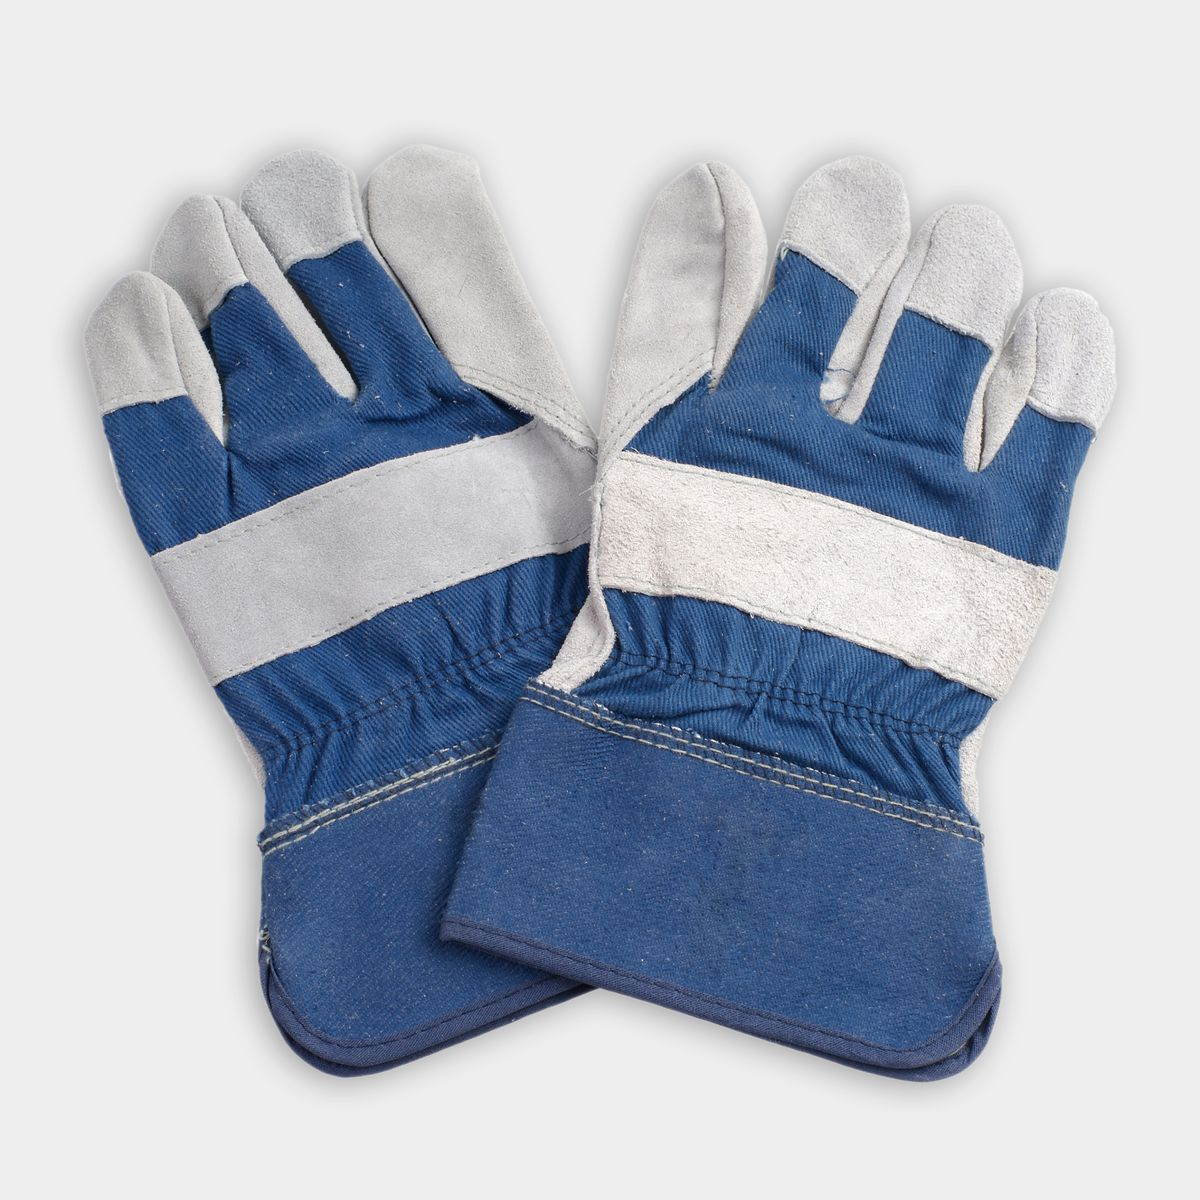 Blue and gray work gloves